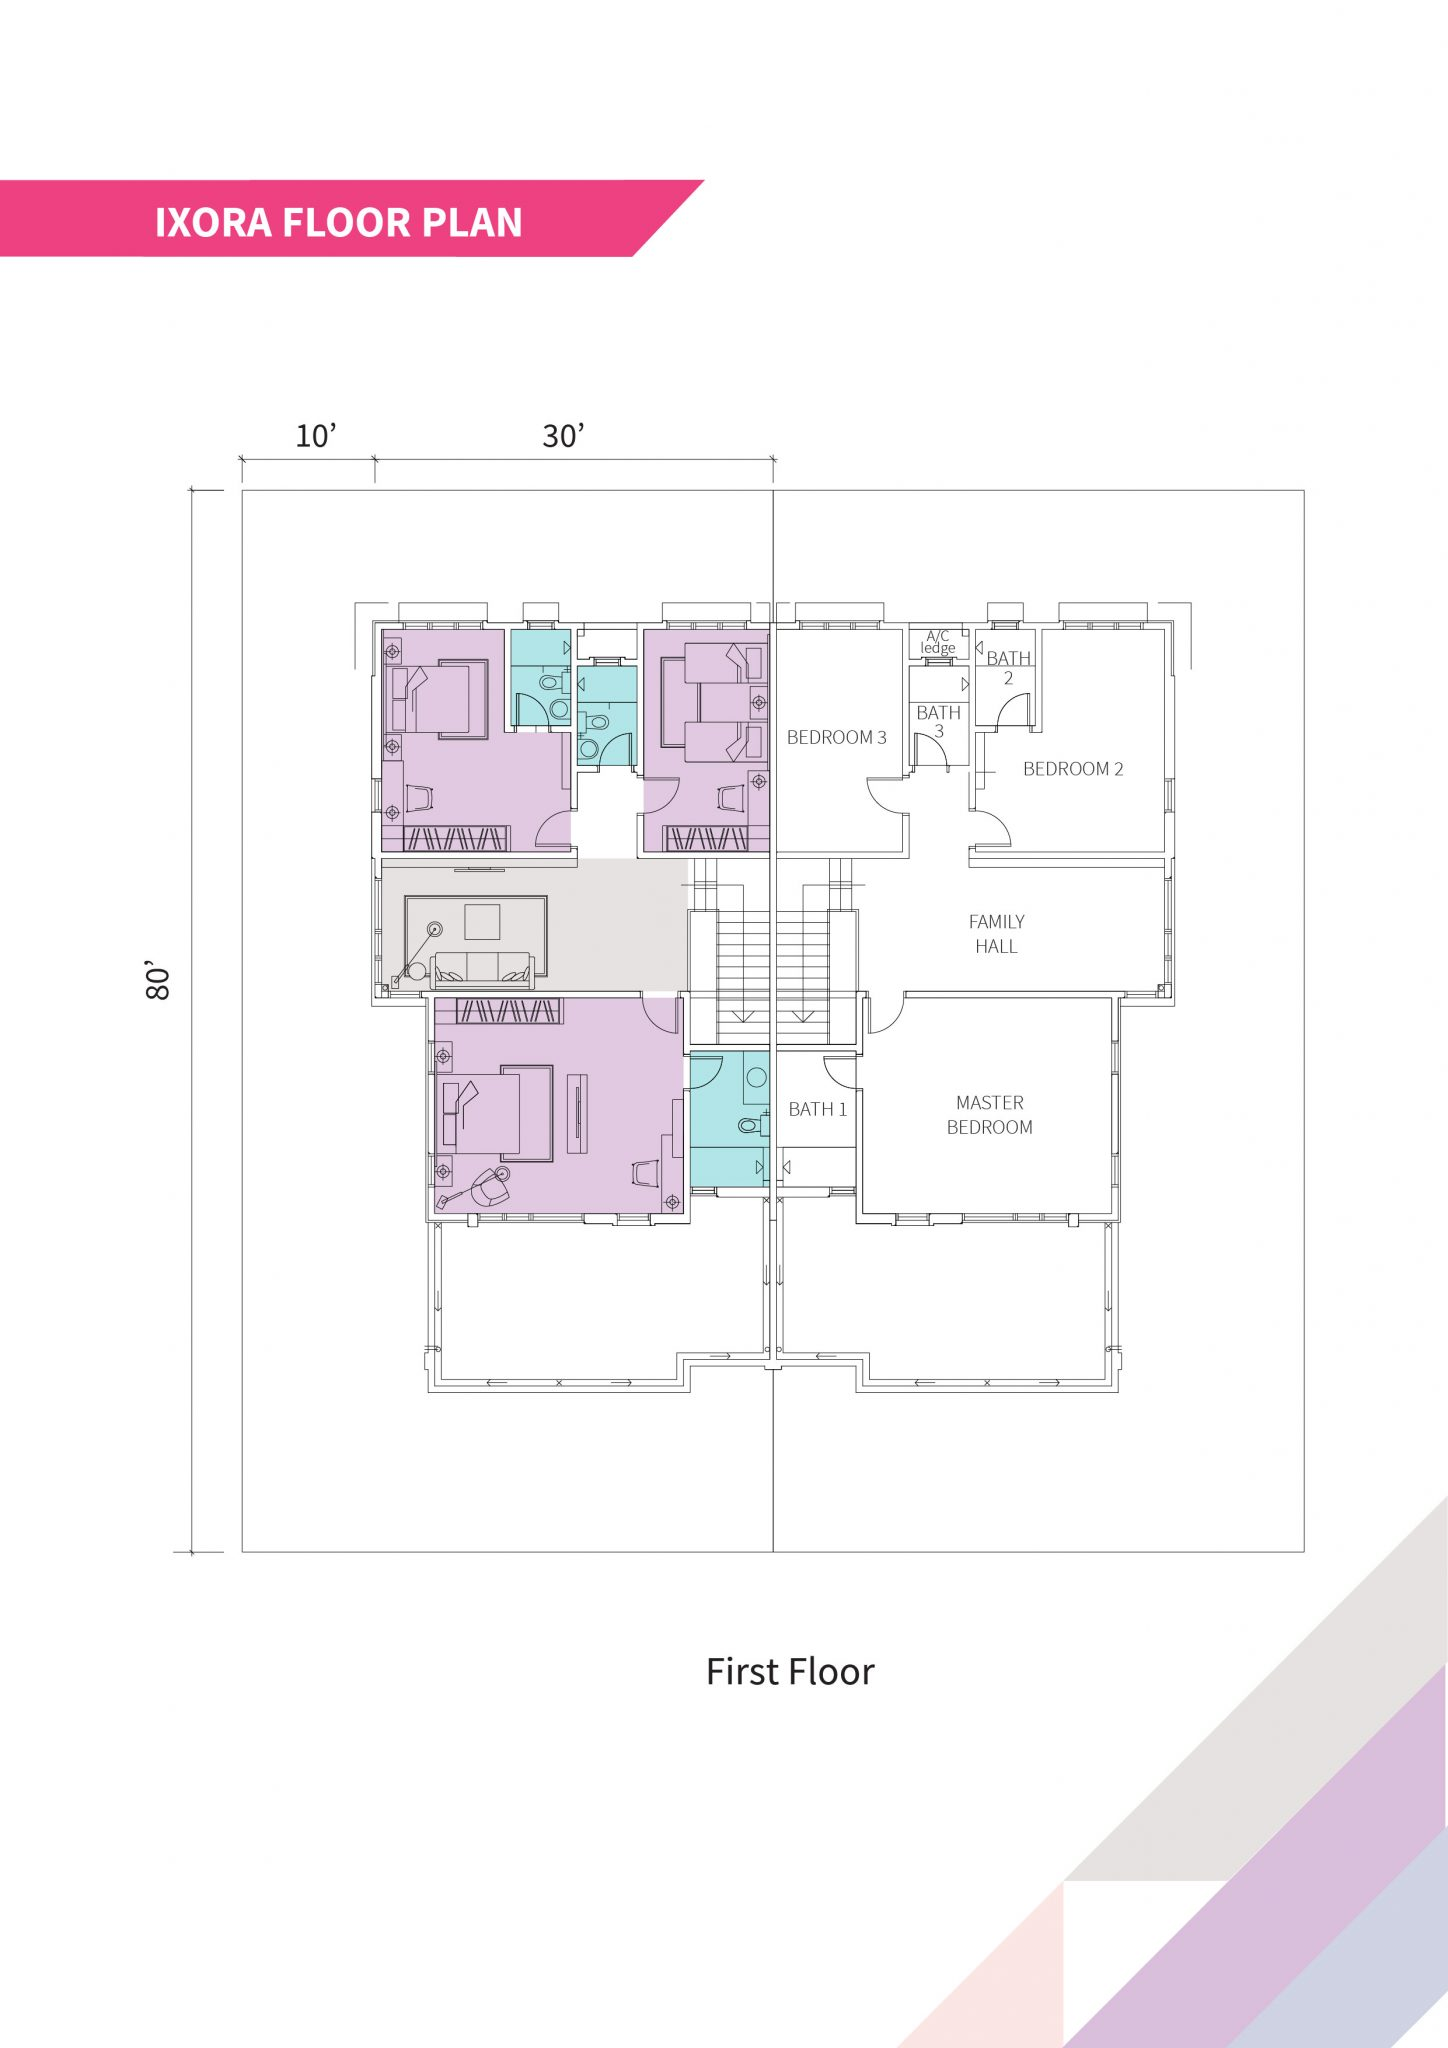 Ixora semi d floor plan- first floor